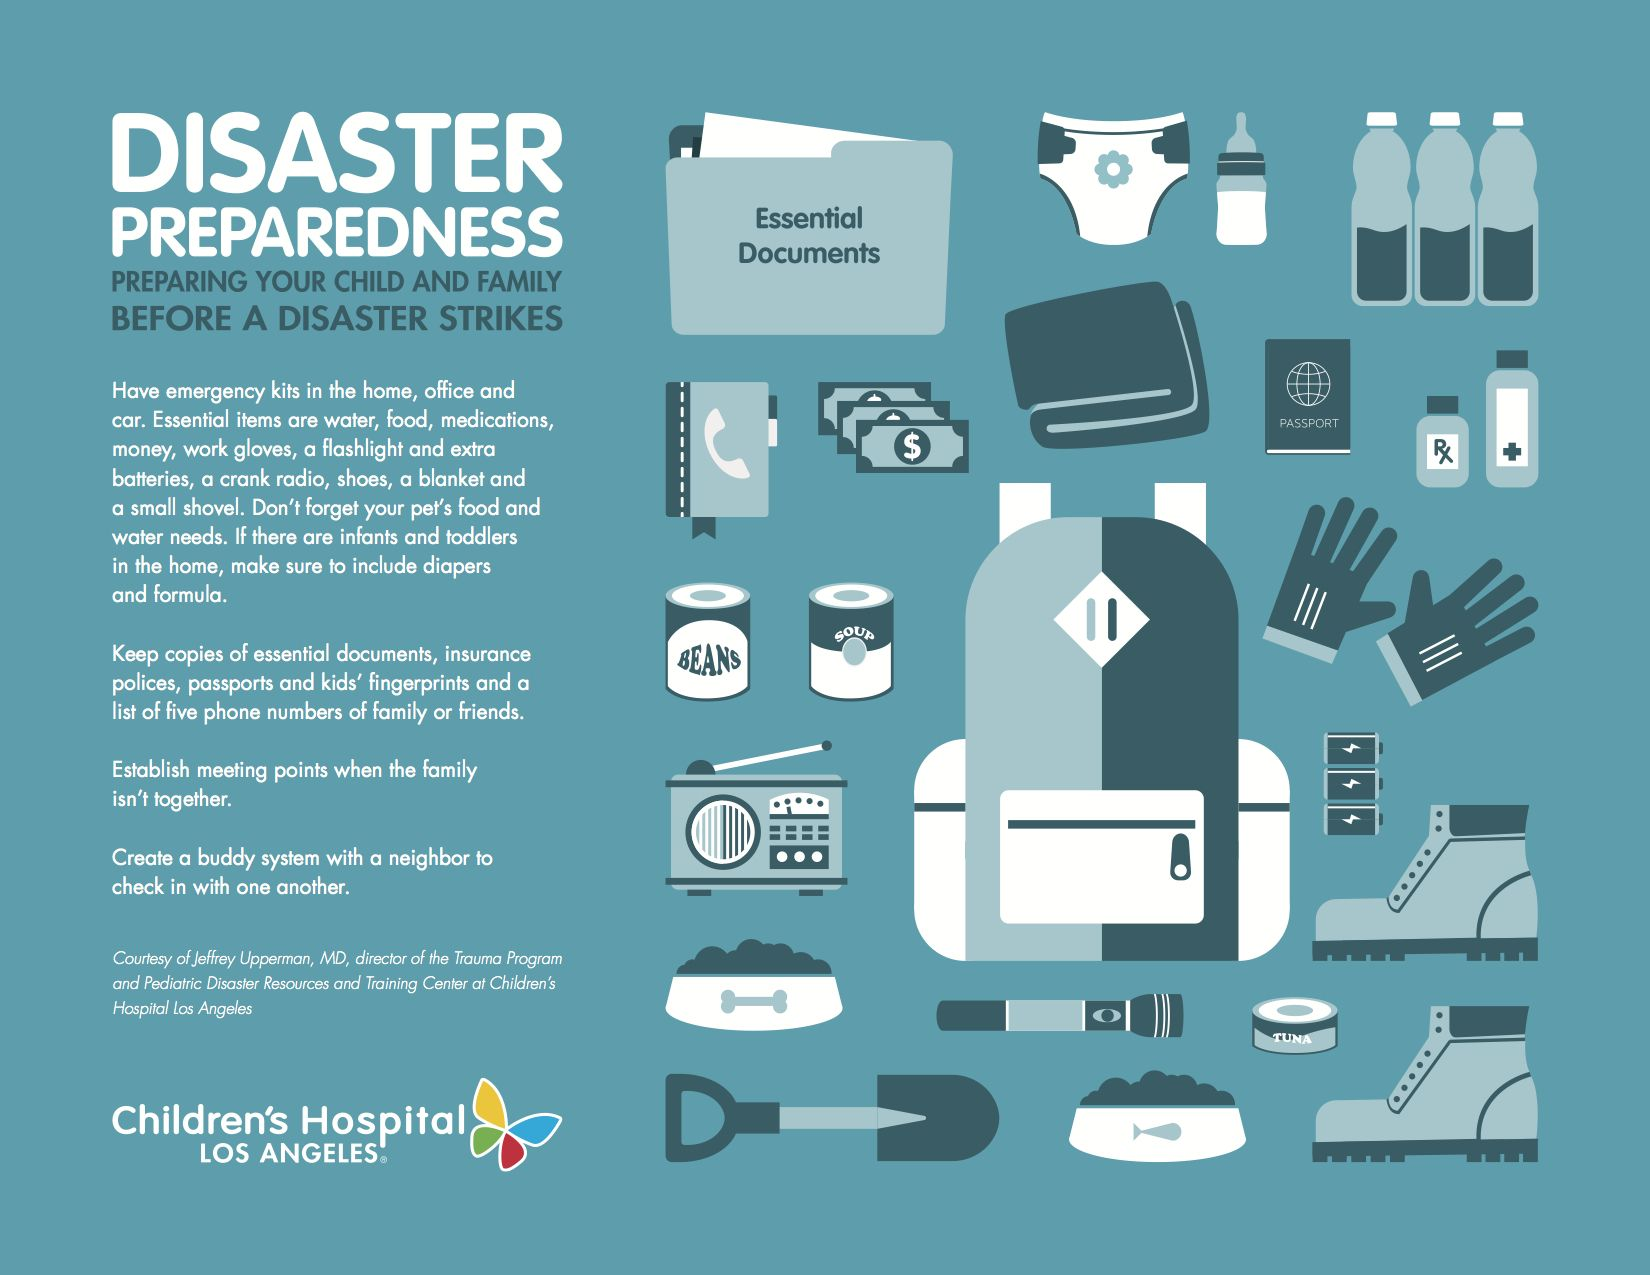 Quick Tips on How to Prepare Your Family For a Disaster